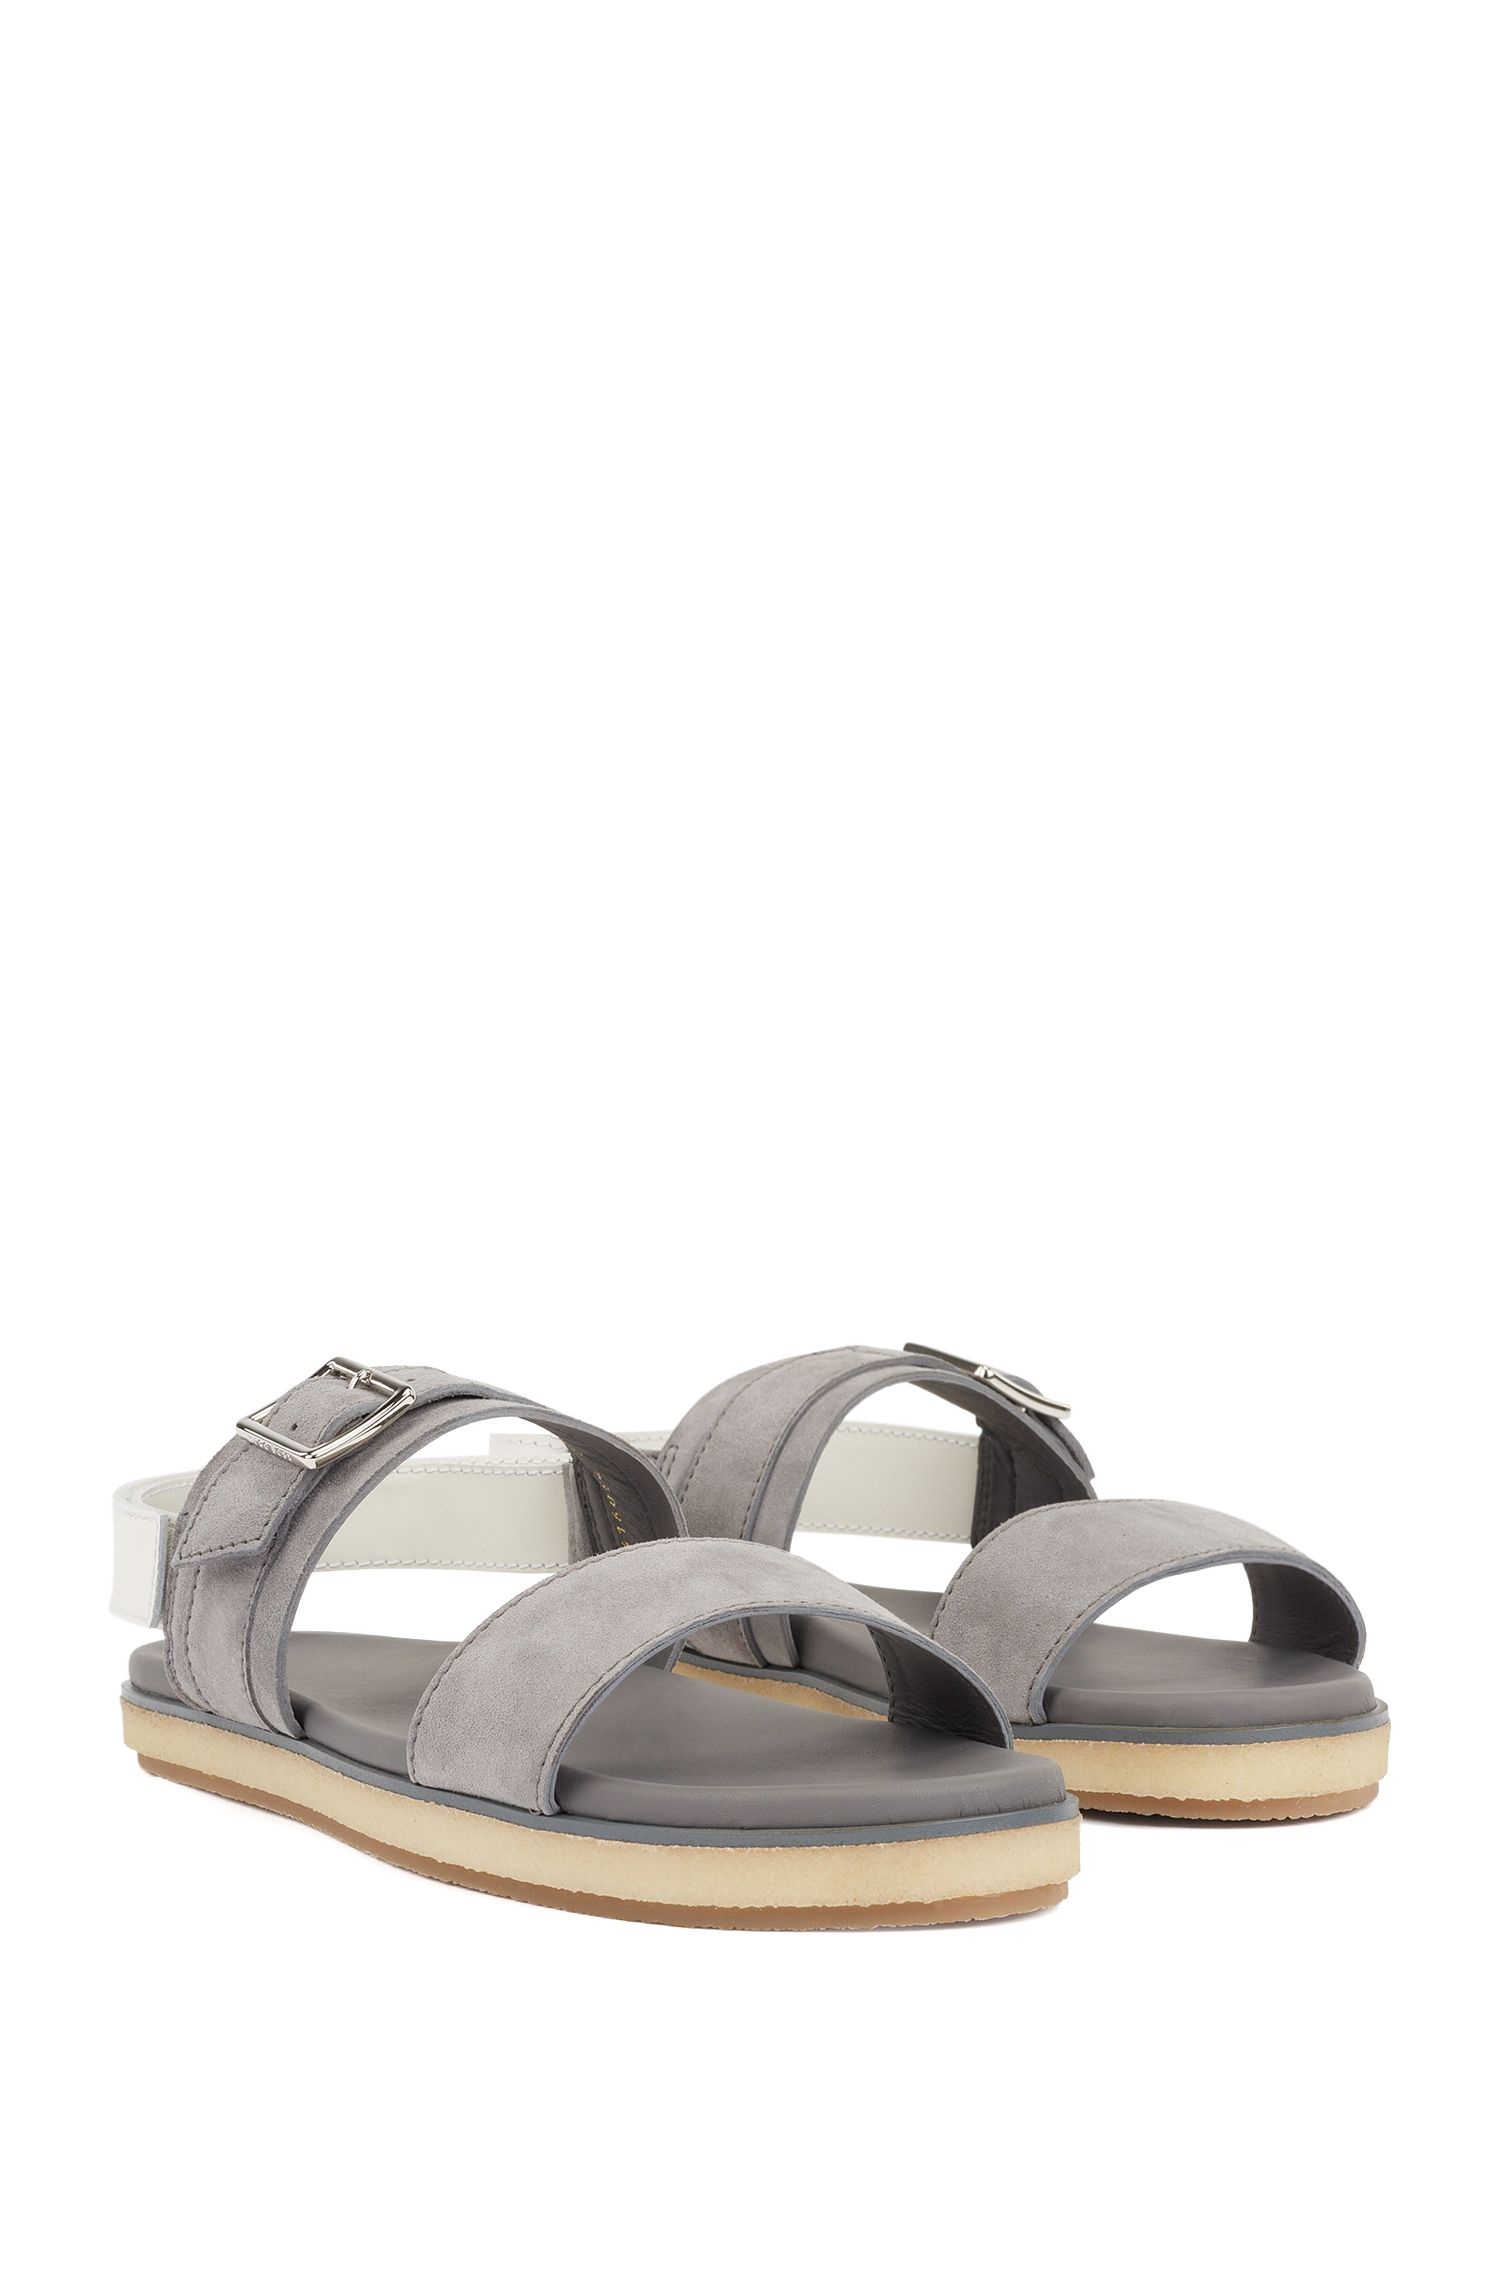 Sandals with suede straps and touch-fastening closure, Grey